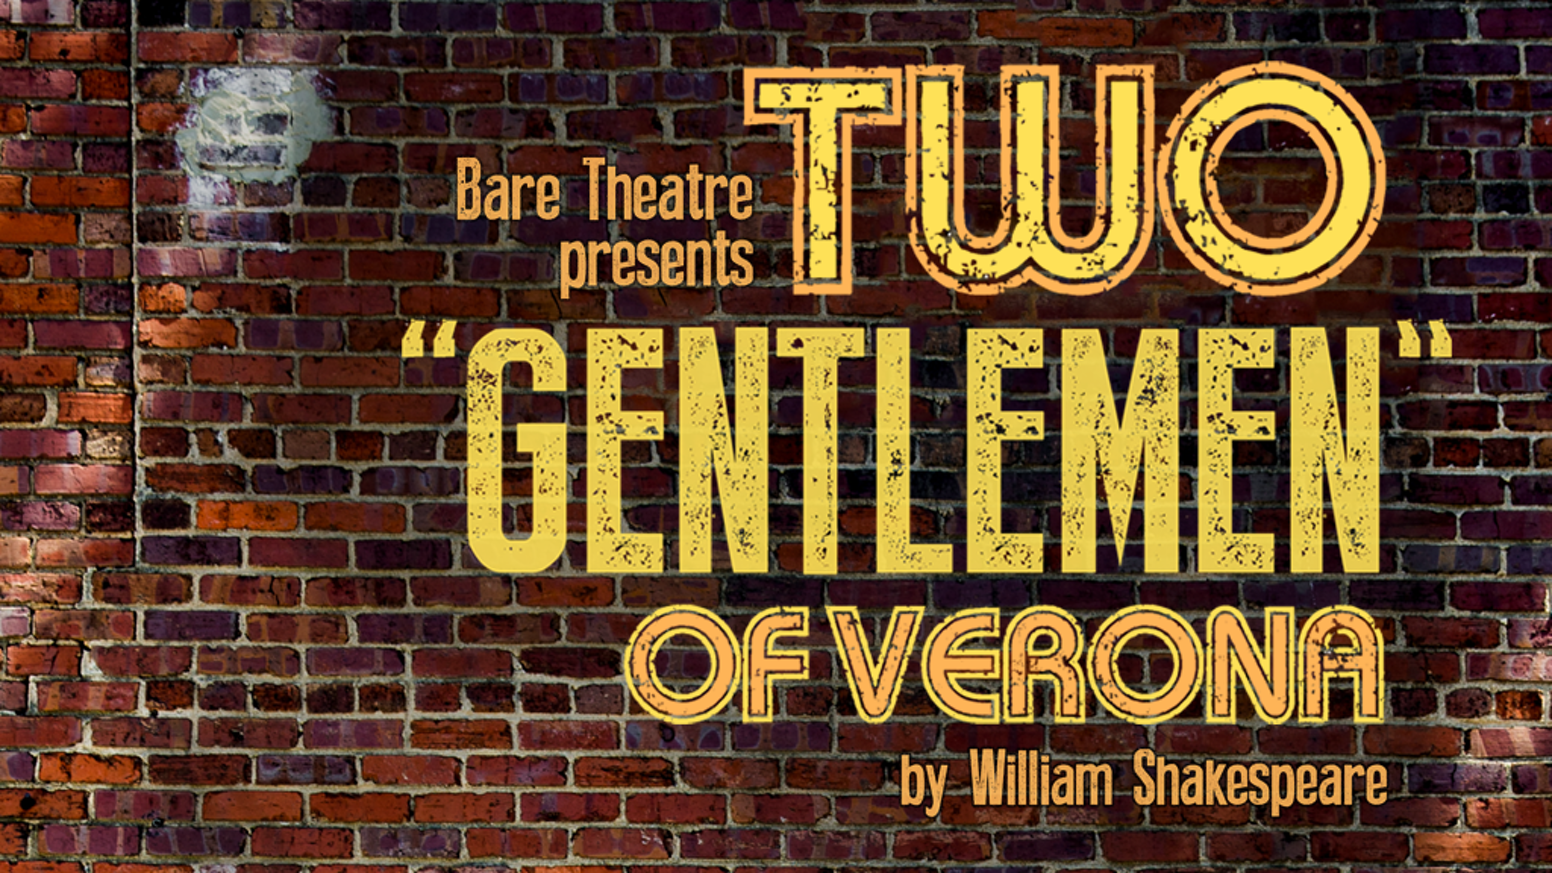 two gentlemen of verona by william shakespeare by g todd buker  two gentlemen of verona by william shakespeare